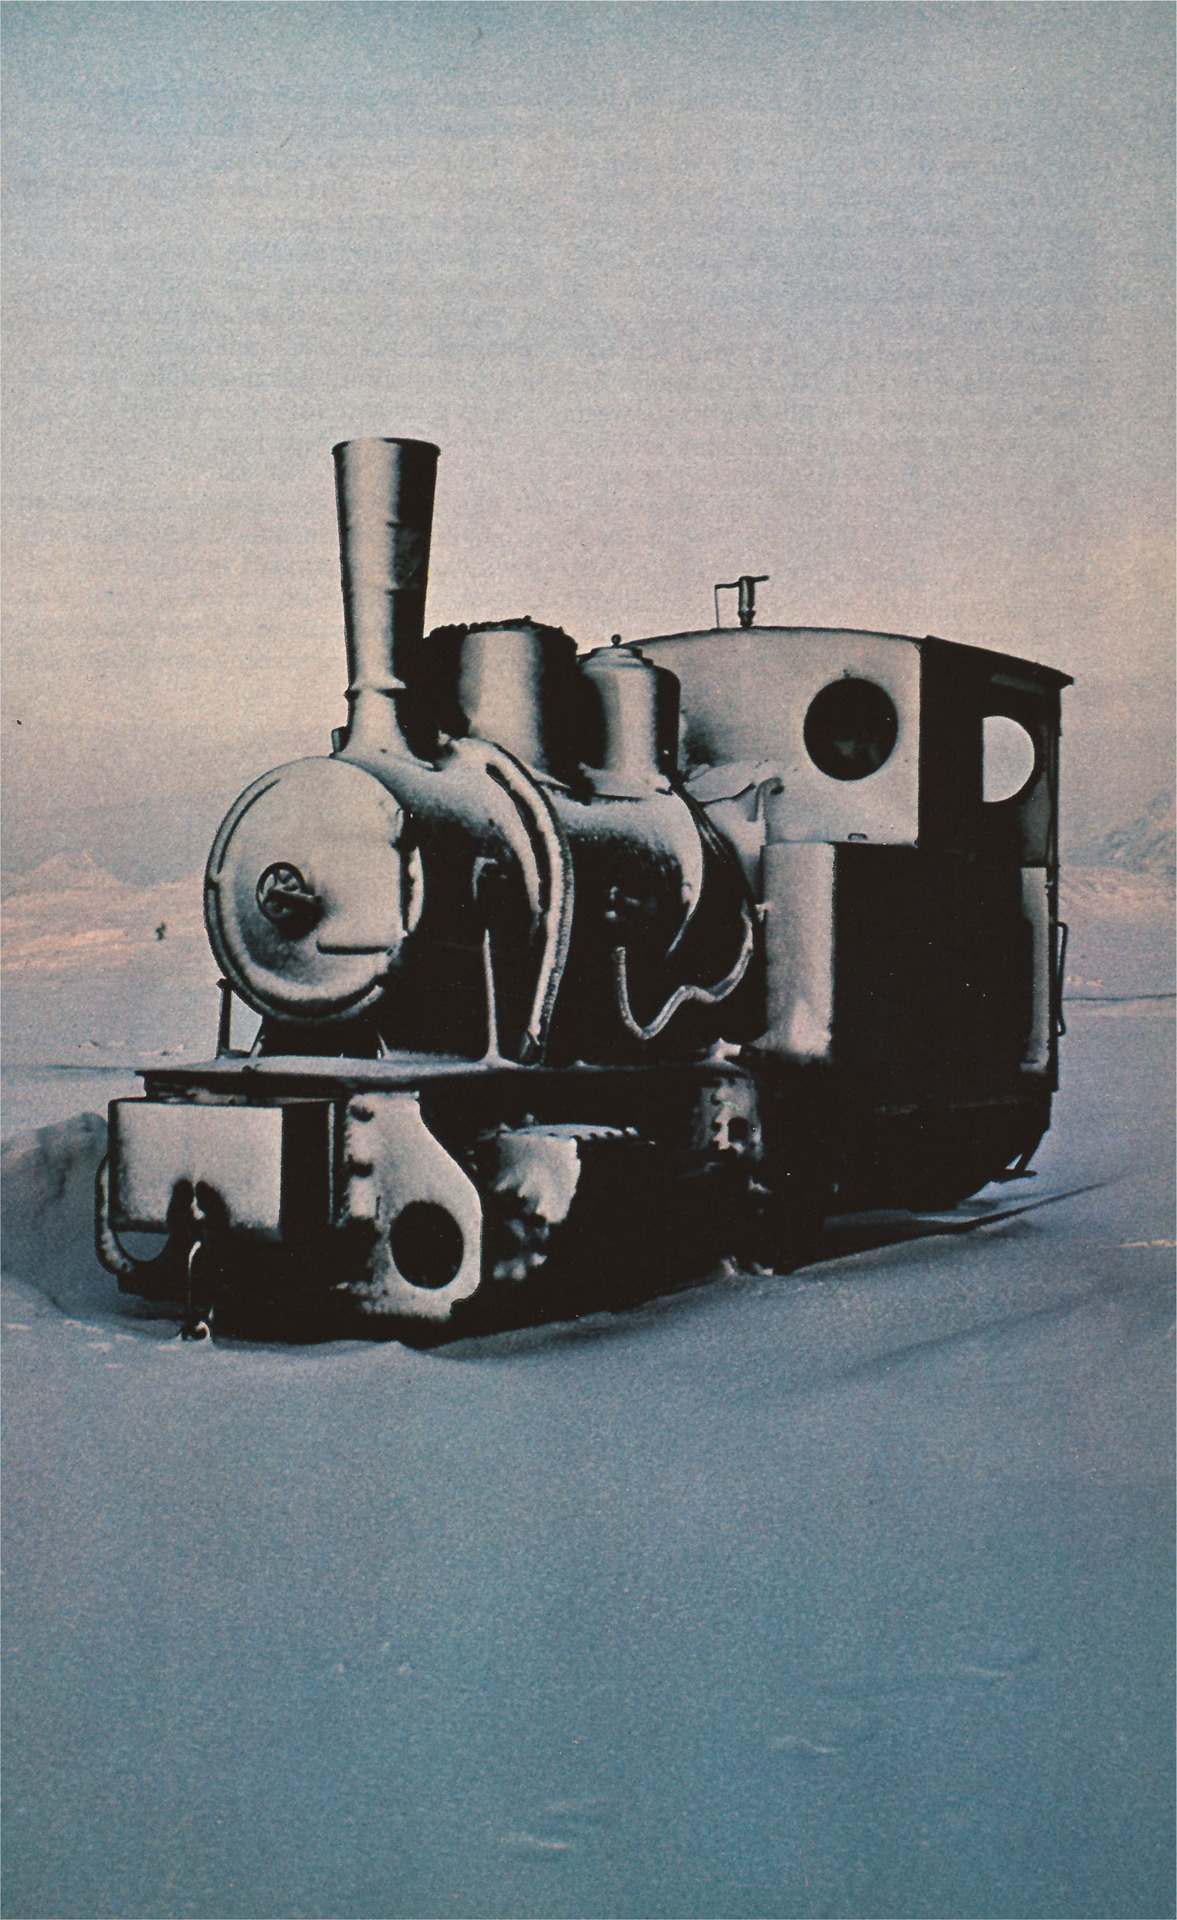 Train frozen in time. Norway, 1978.